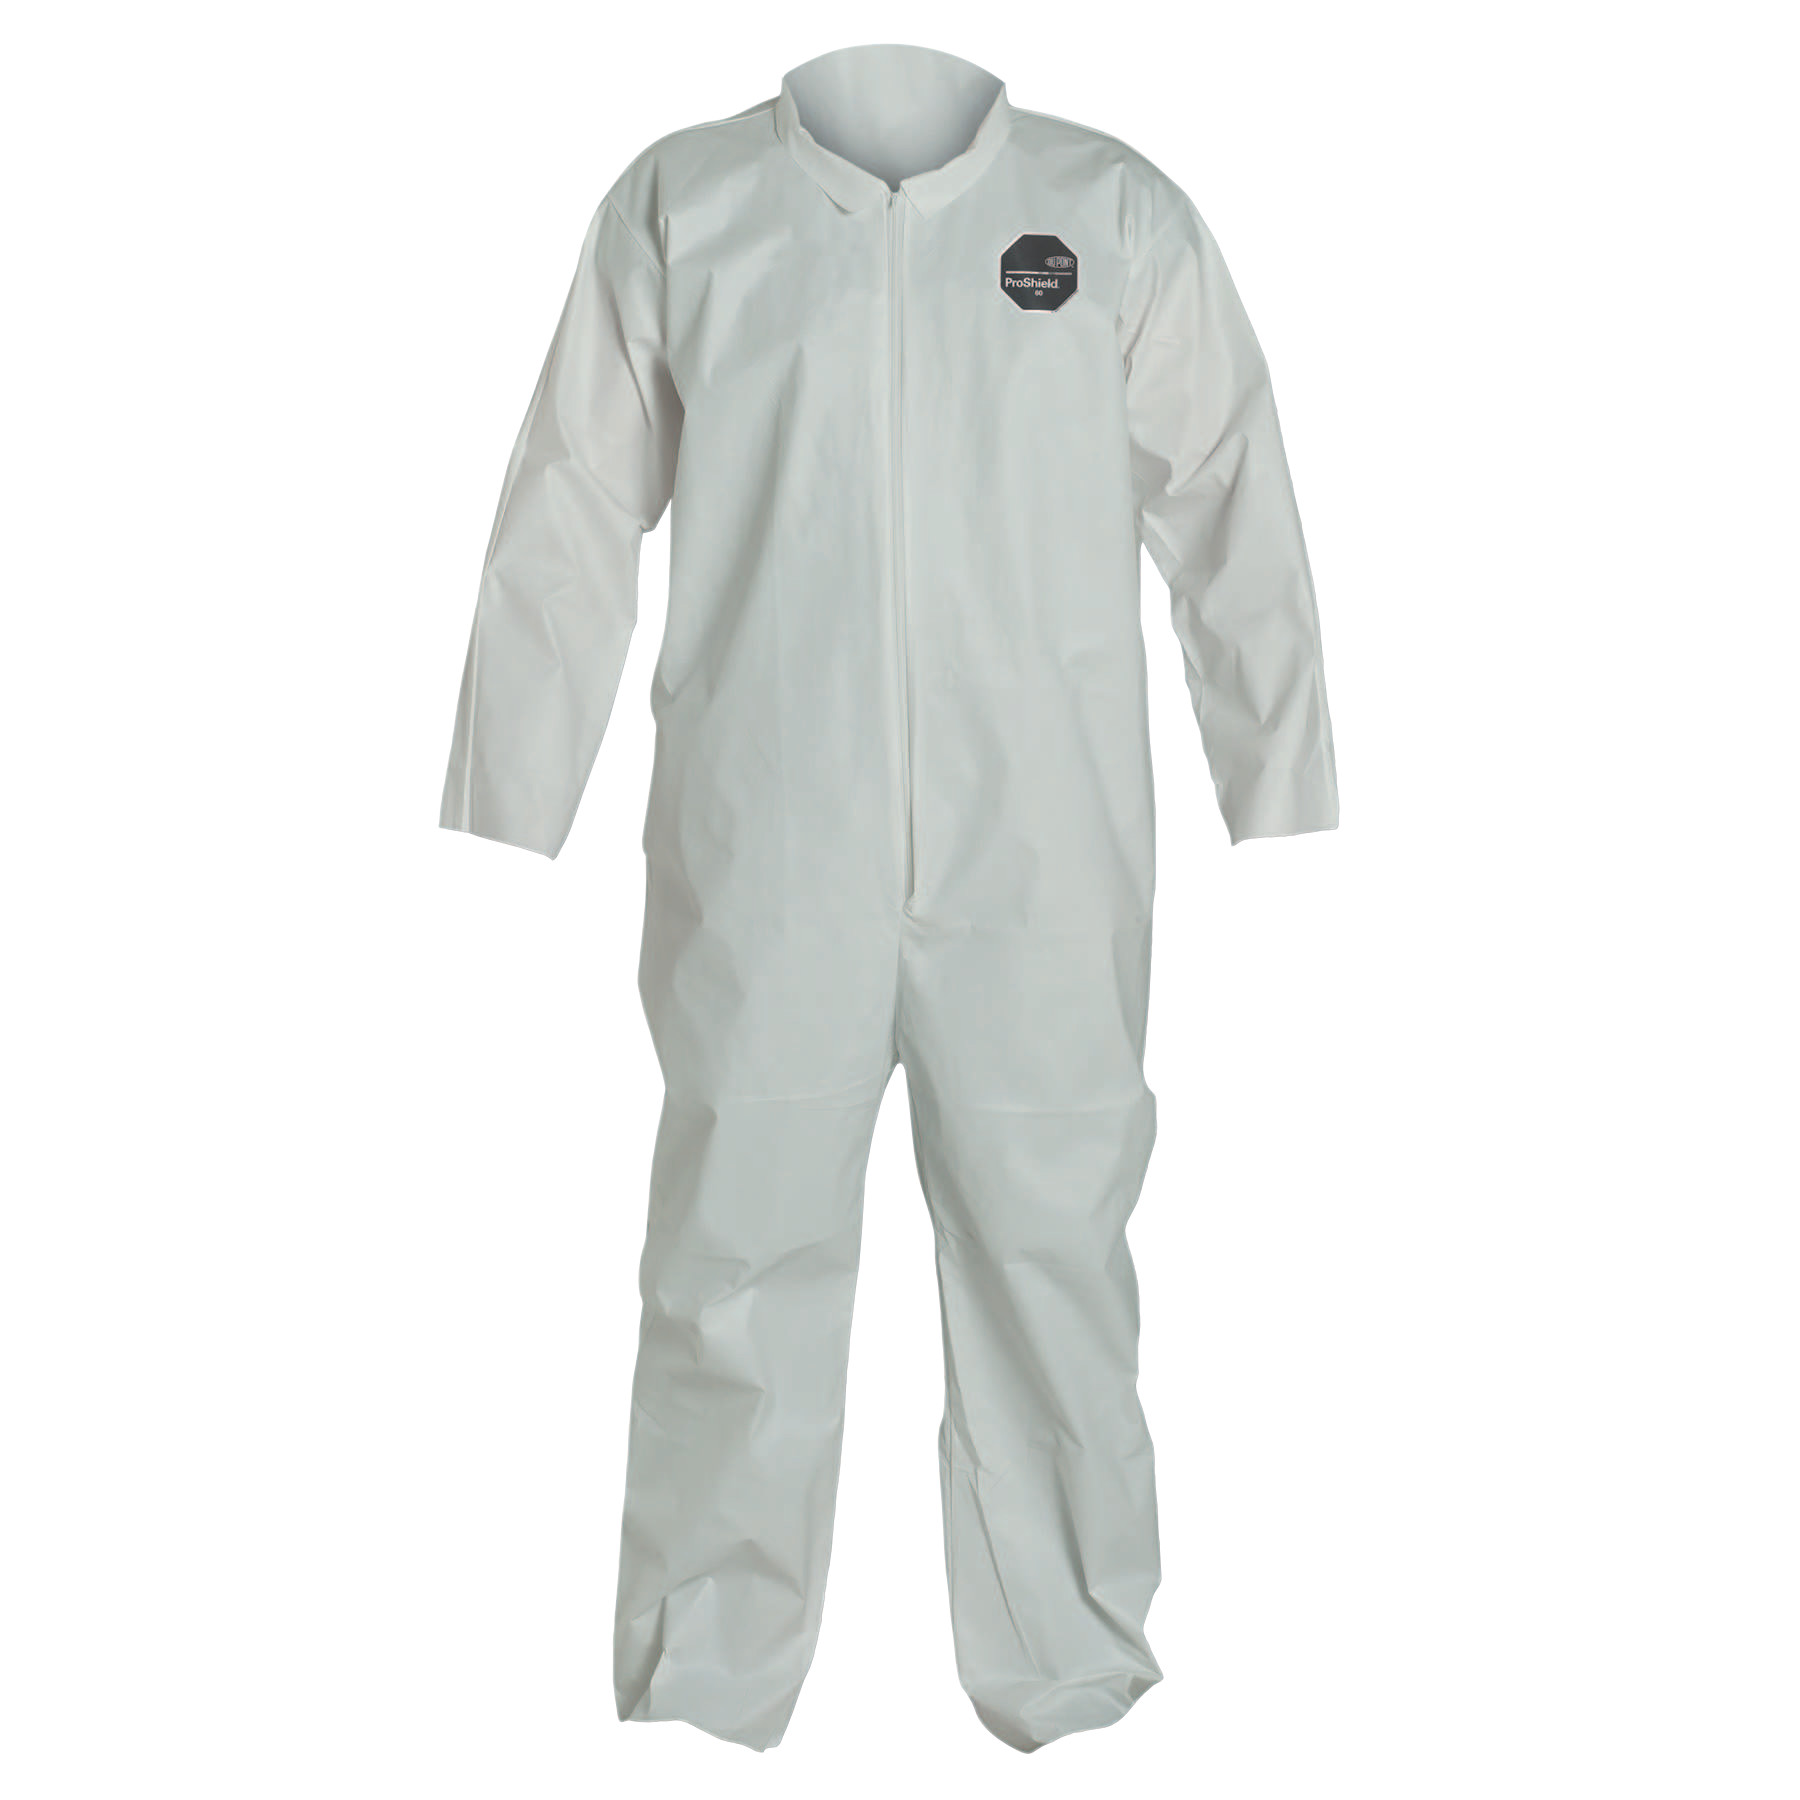 DuPont ProShield NexGen Coveralls, White, 3X-Large by DuPont™